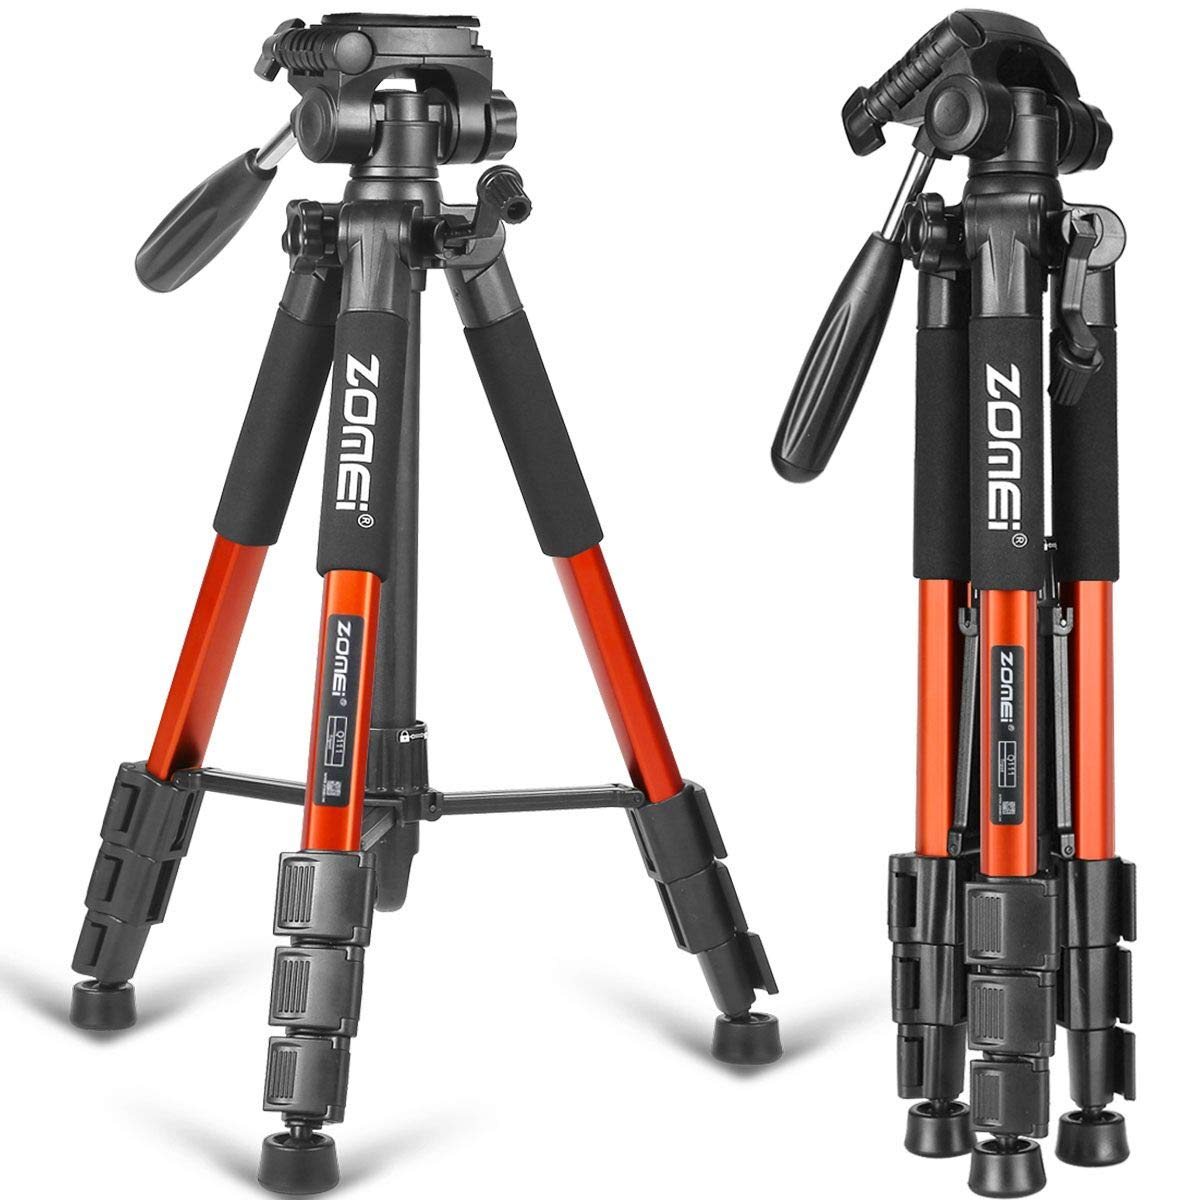 ZOMEI 55'' Compact Light Weight Travel Portable Folding SLR Camera Tripod for Canon Nikon Sony DSLR Camera with Carry Case(orange)